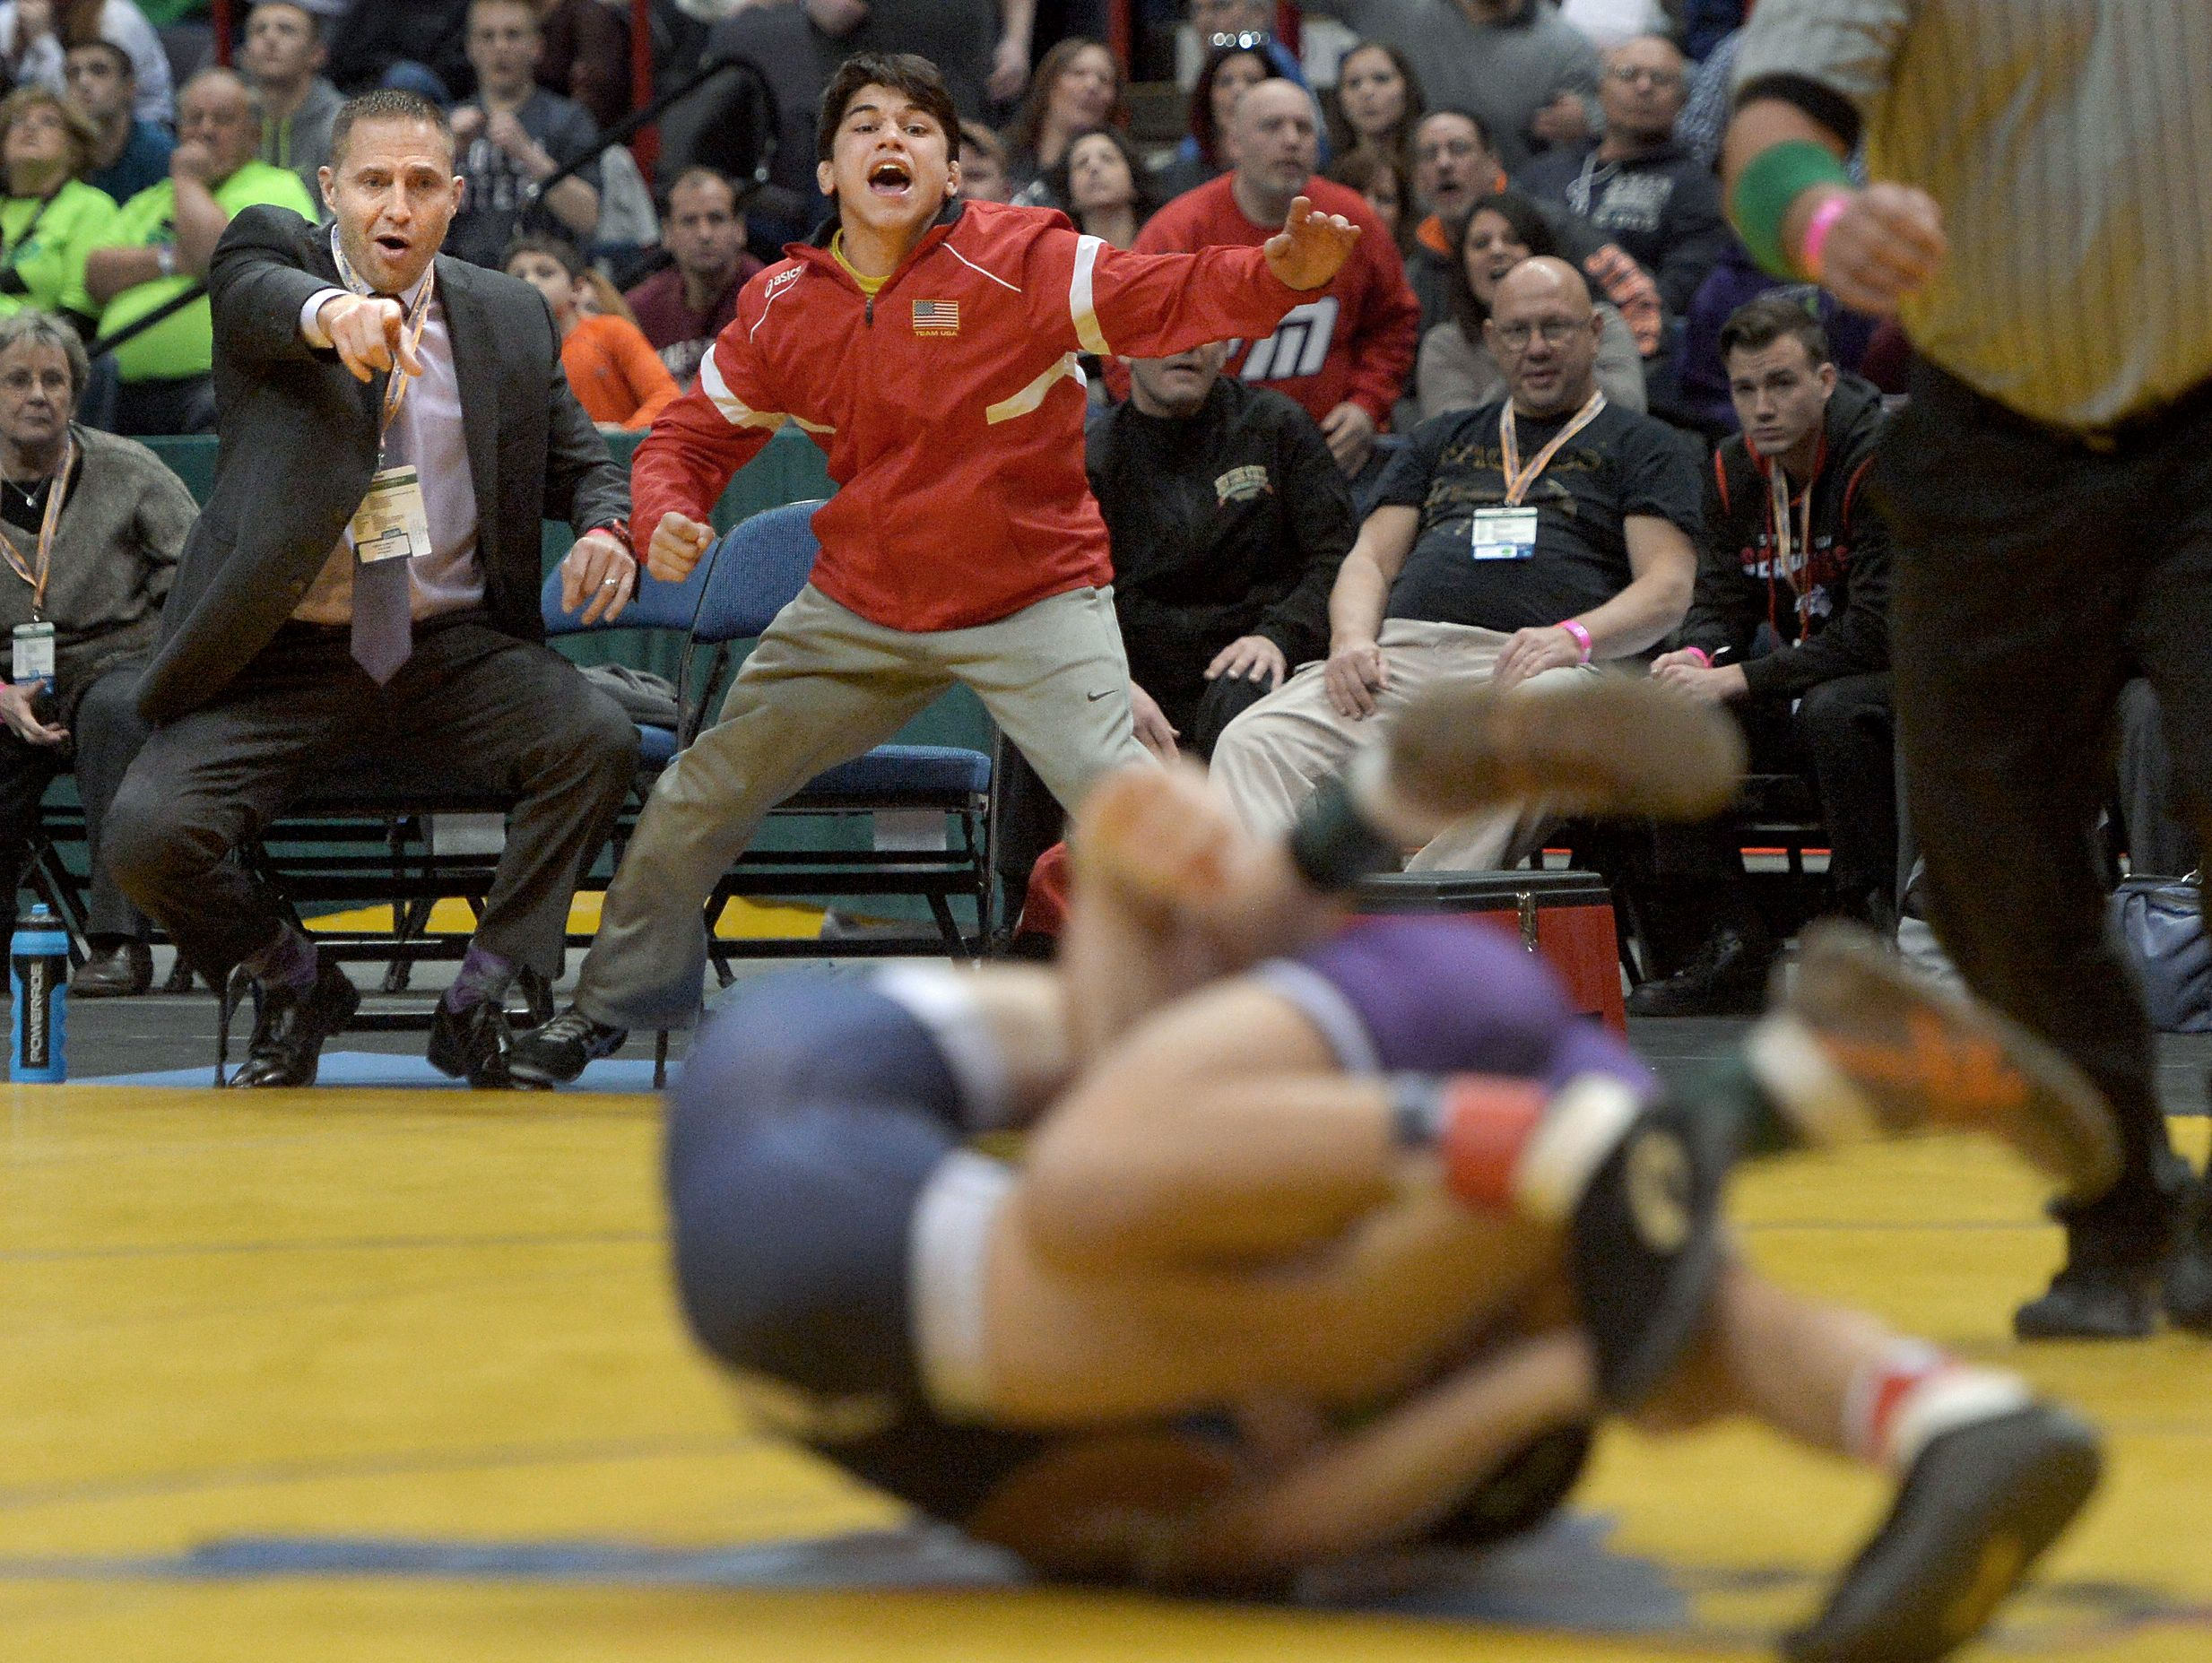 Hilton coach Craig Gross, left, and Yianni Diakomihalis cheer on Greg Diakomihalis in the finals of the 99-pound class (Division I)..